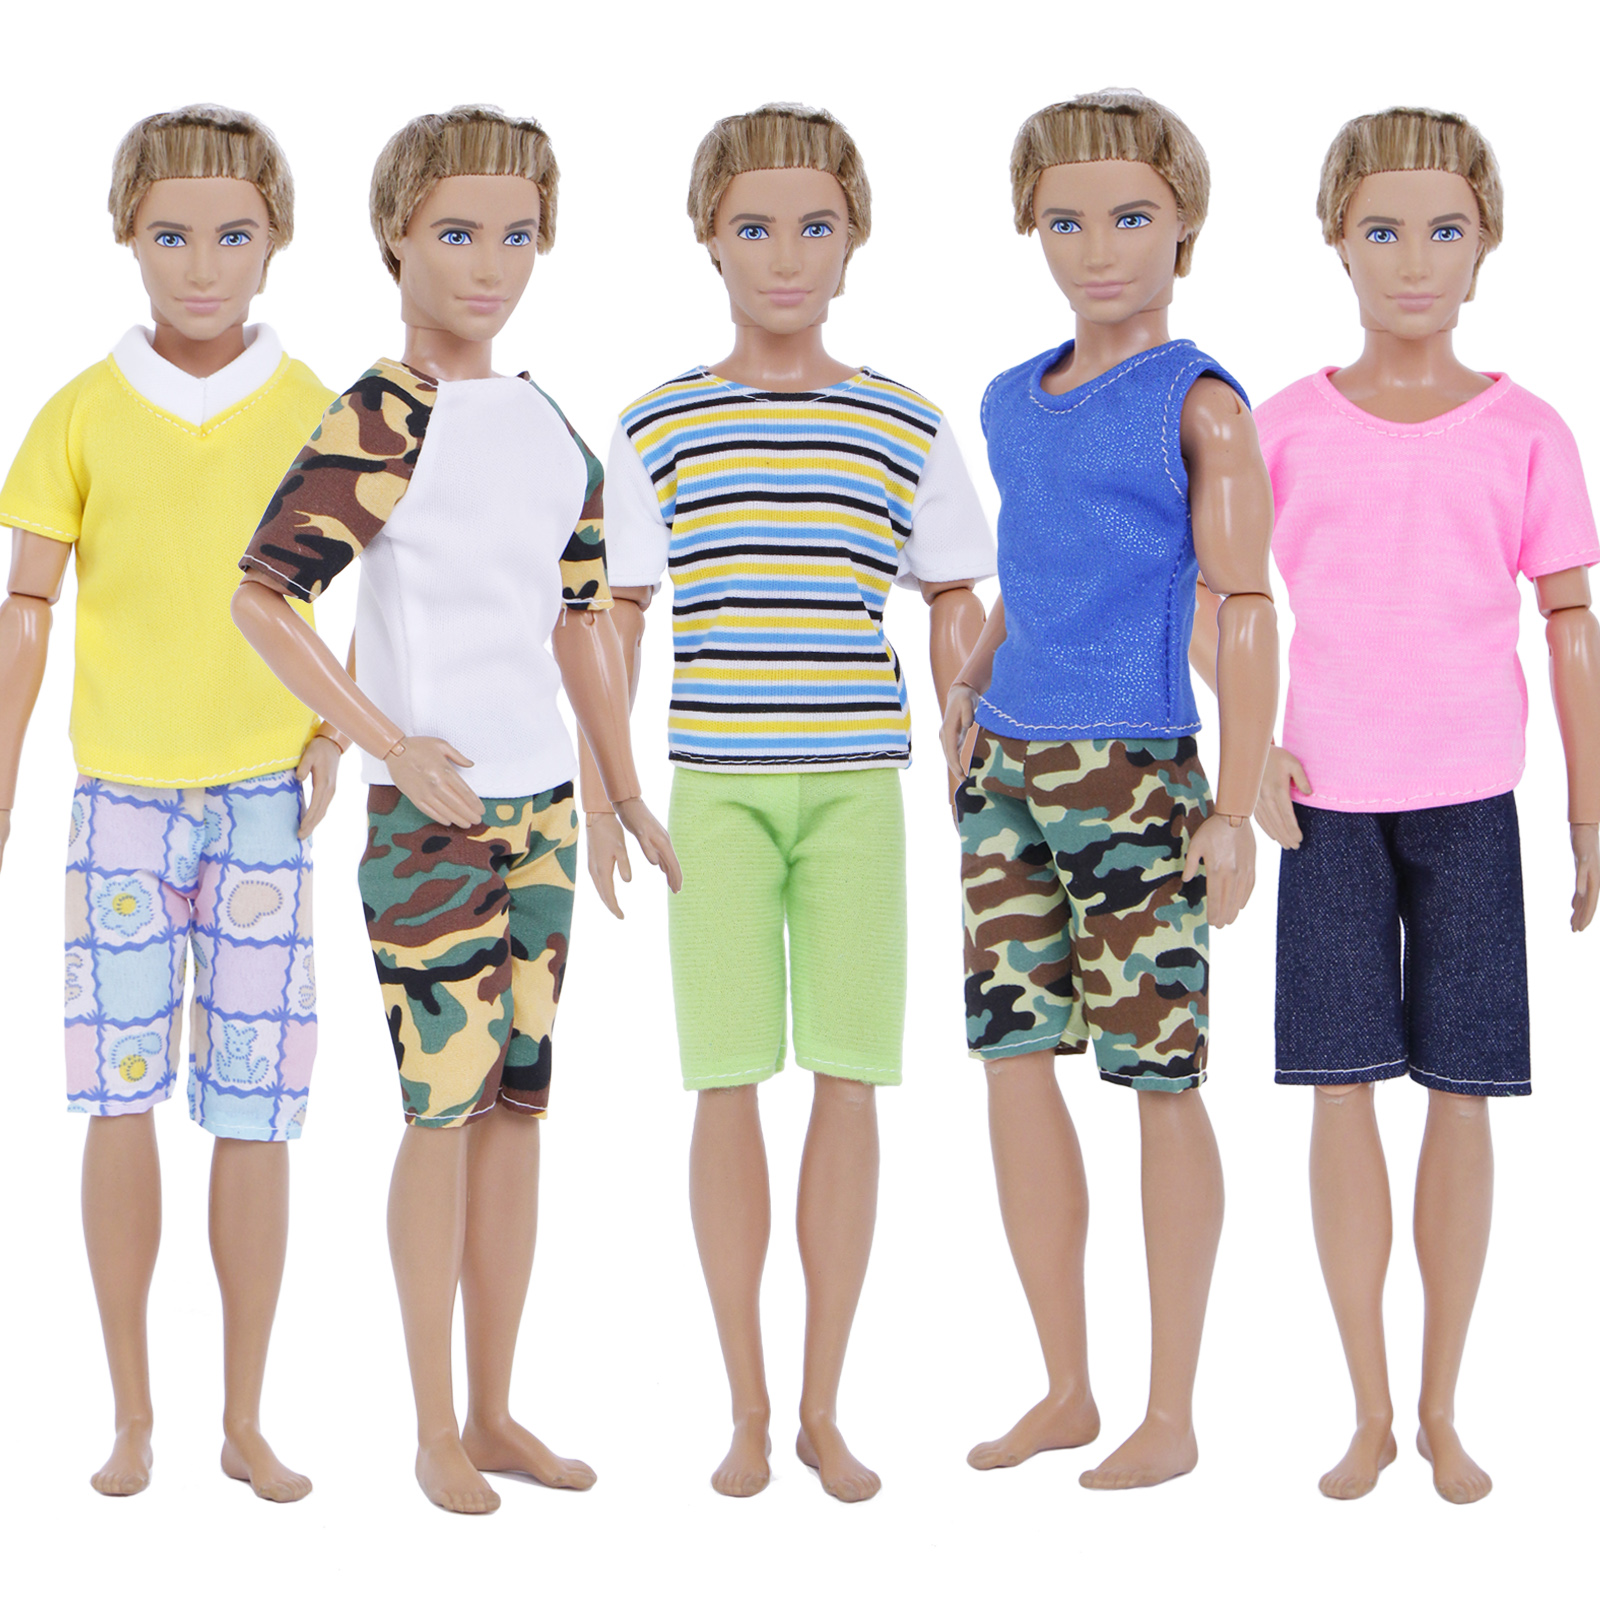 5 Sets Fashion Outfits//Clothes For 12 inch Ken Doll